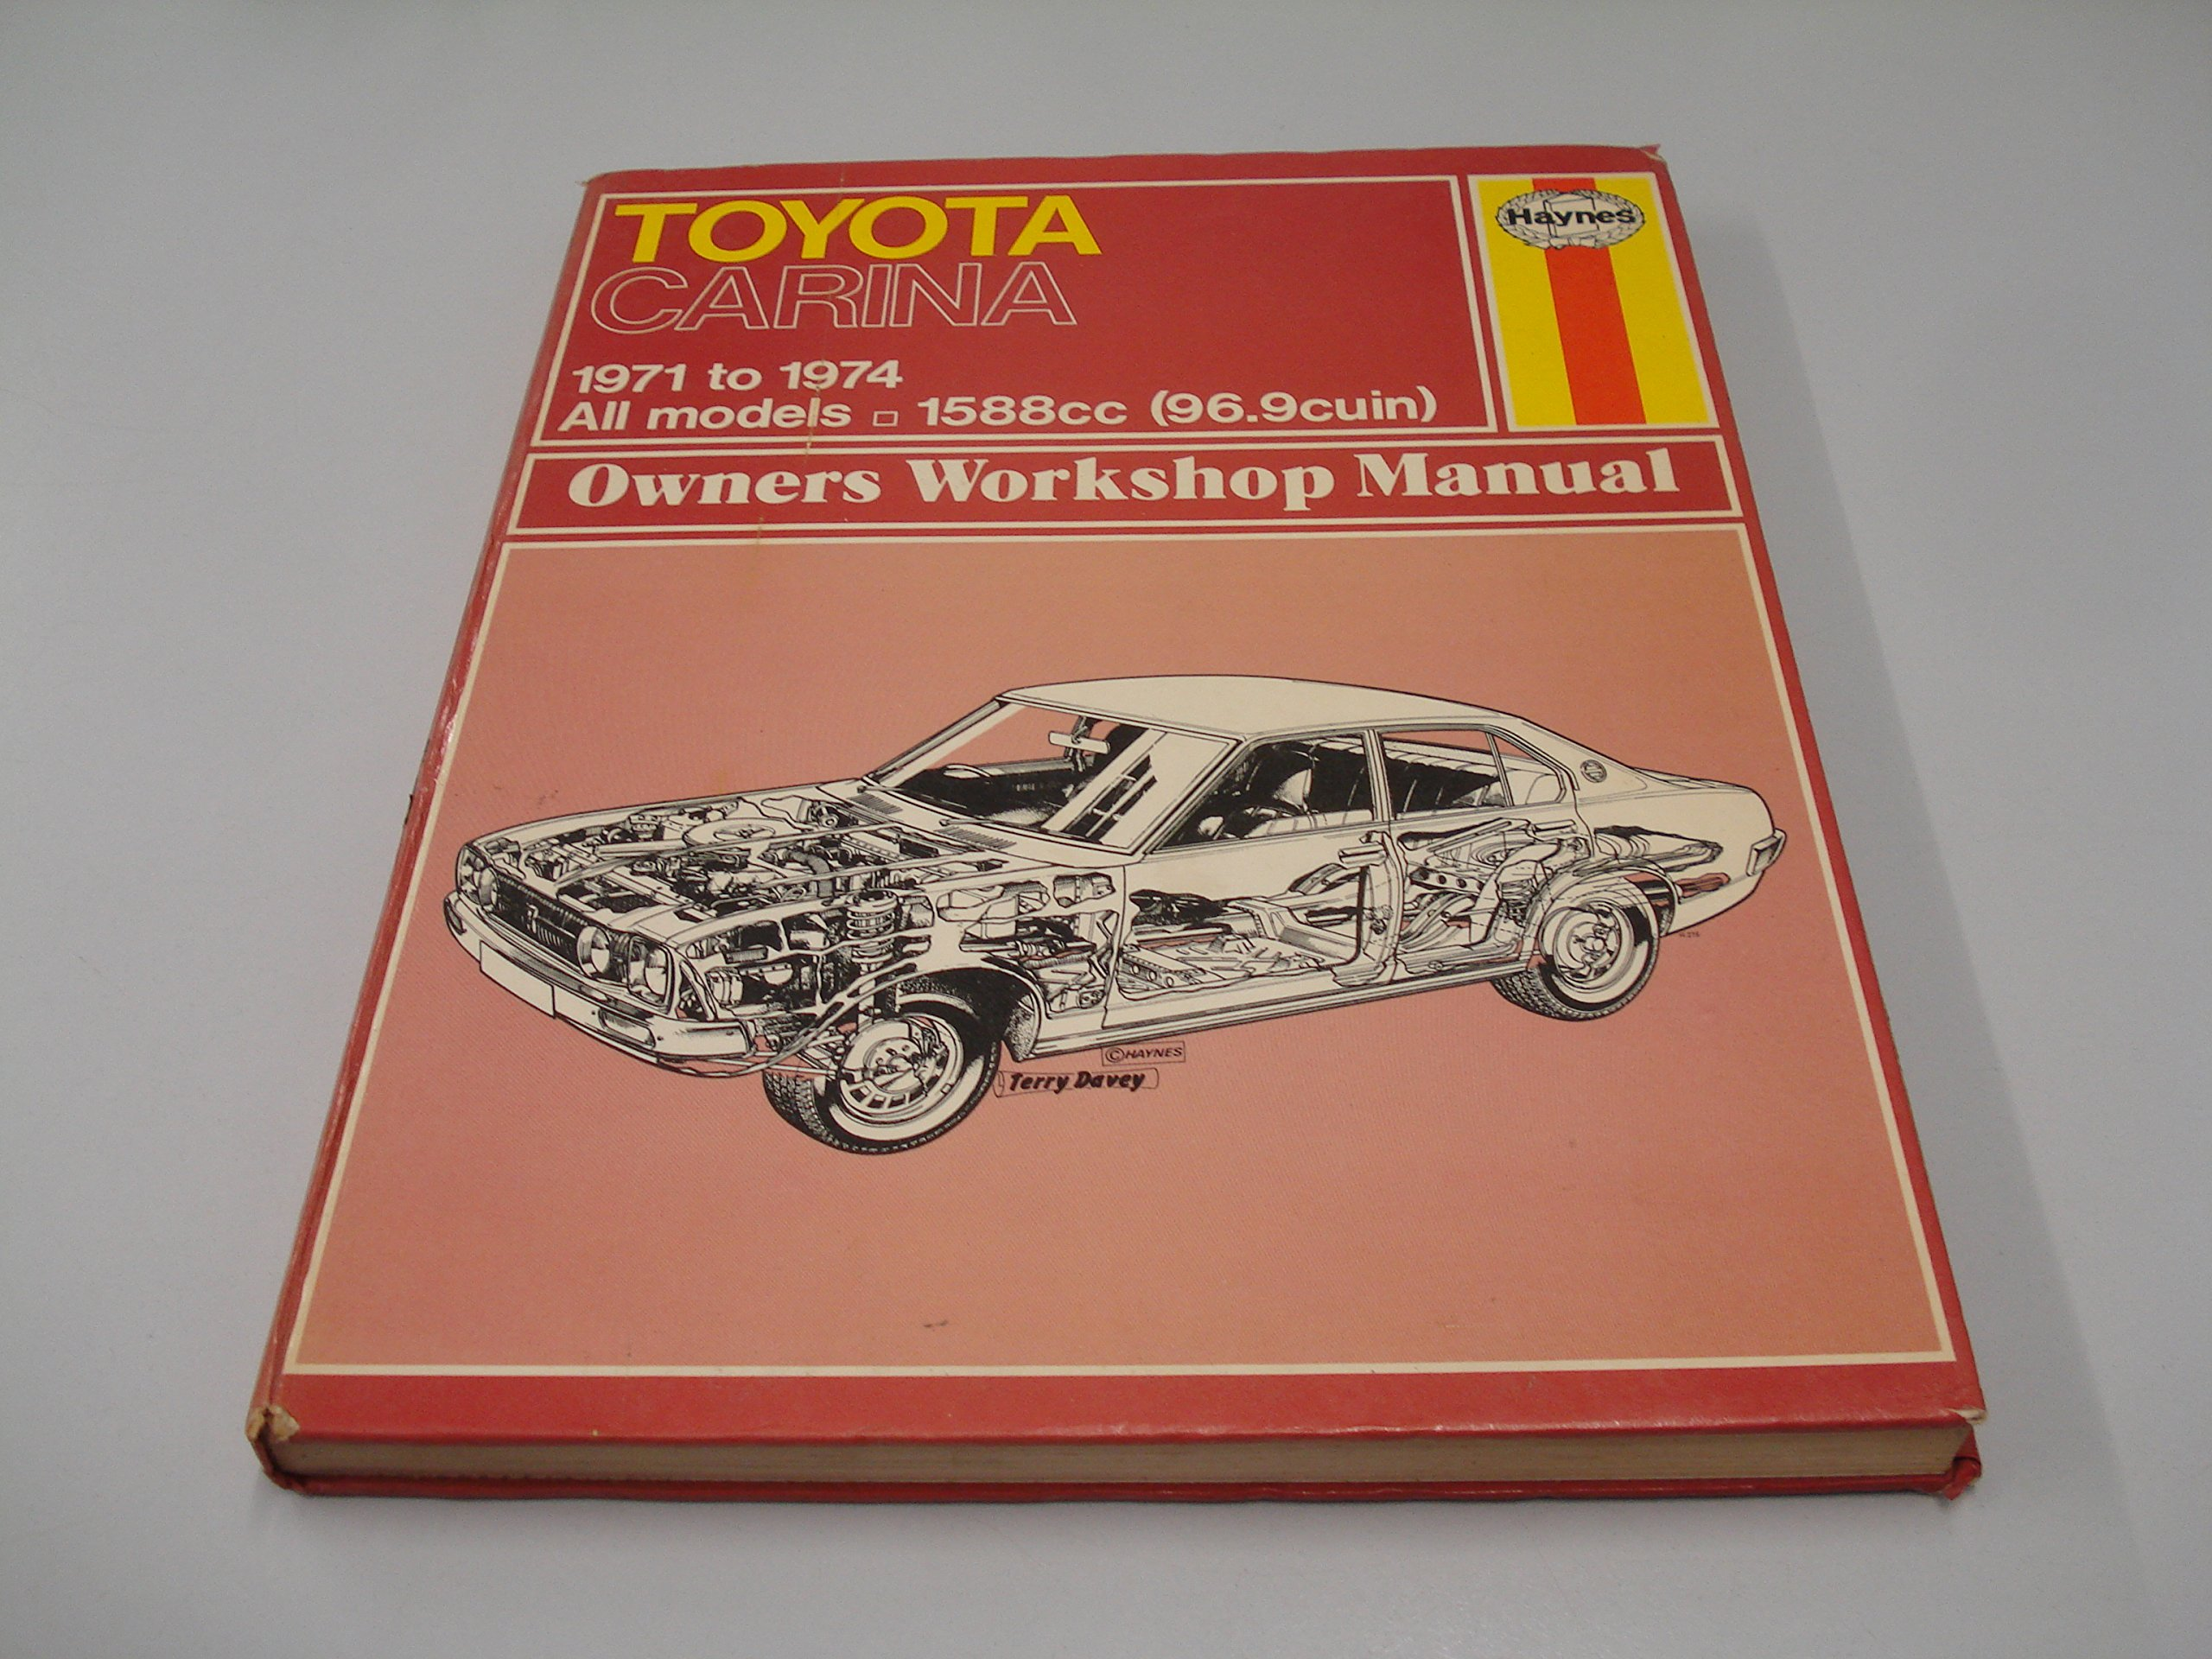 Toyota Carina '71-'74 (Owners Workshop Manual, No 150): John Harold Haynes,  B. L. Chalmers-Hunt: 9780856961502: Amazon.com: Books